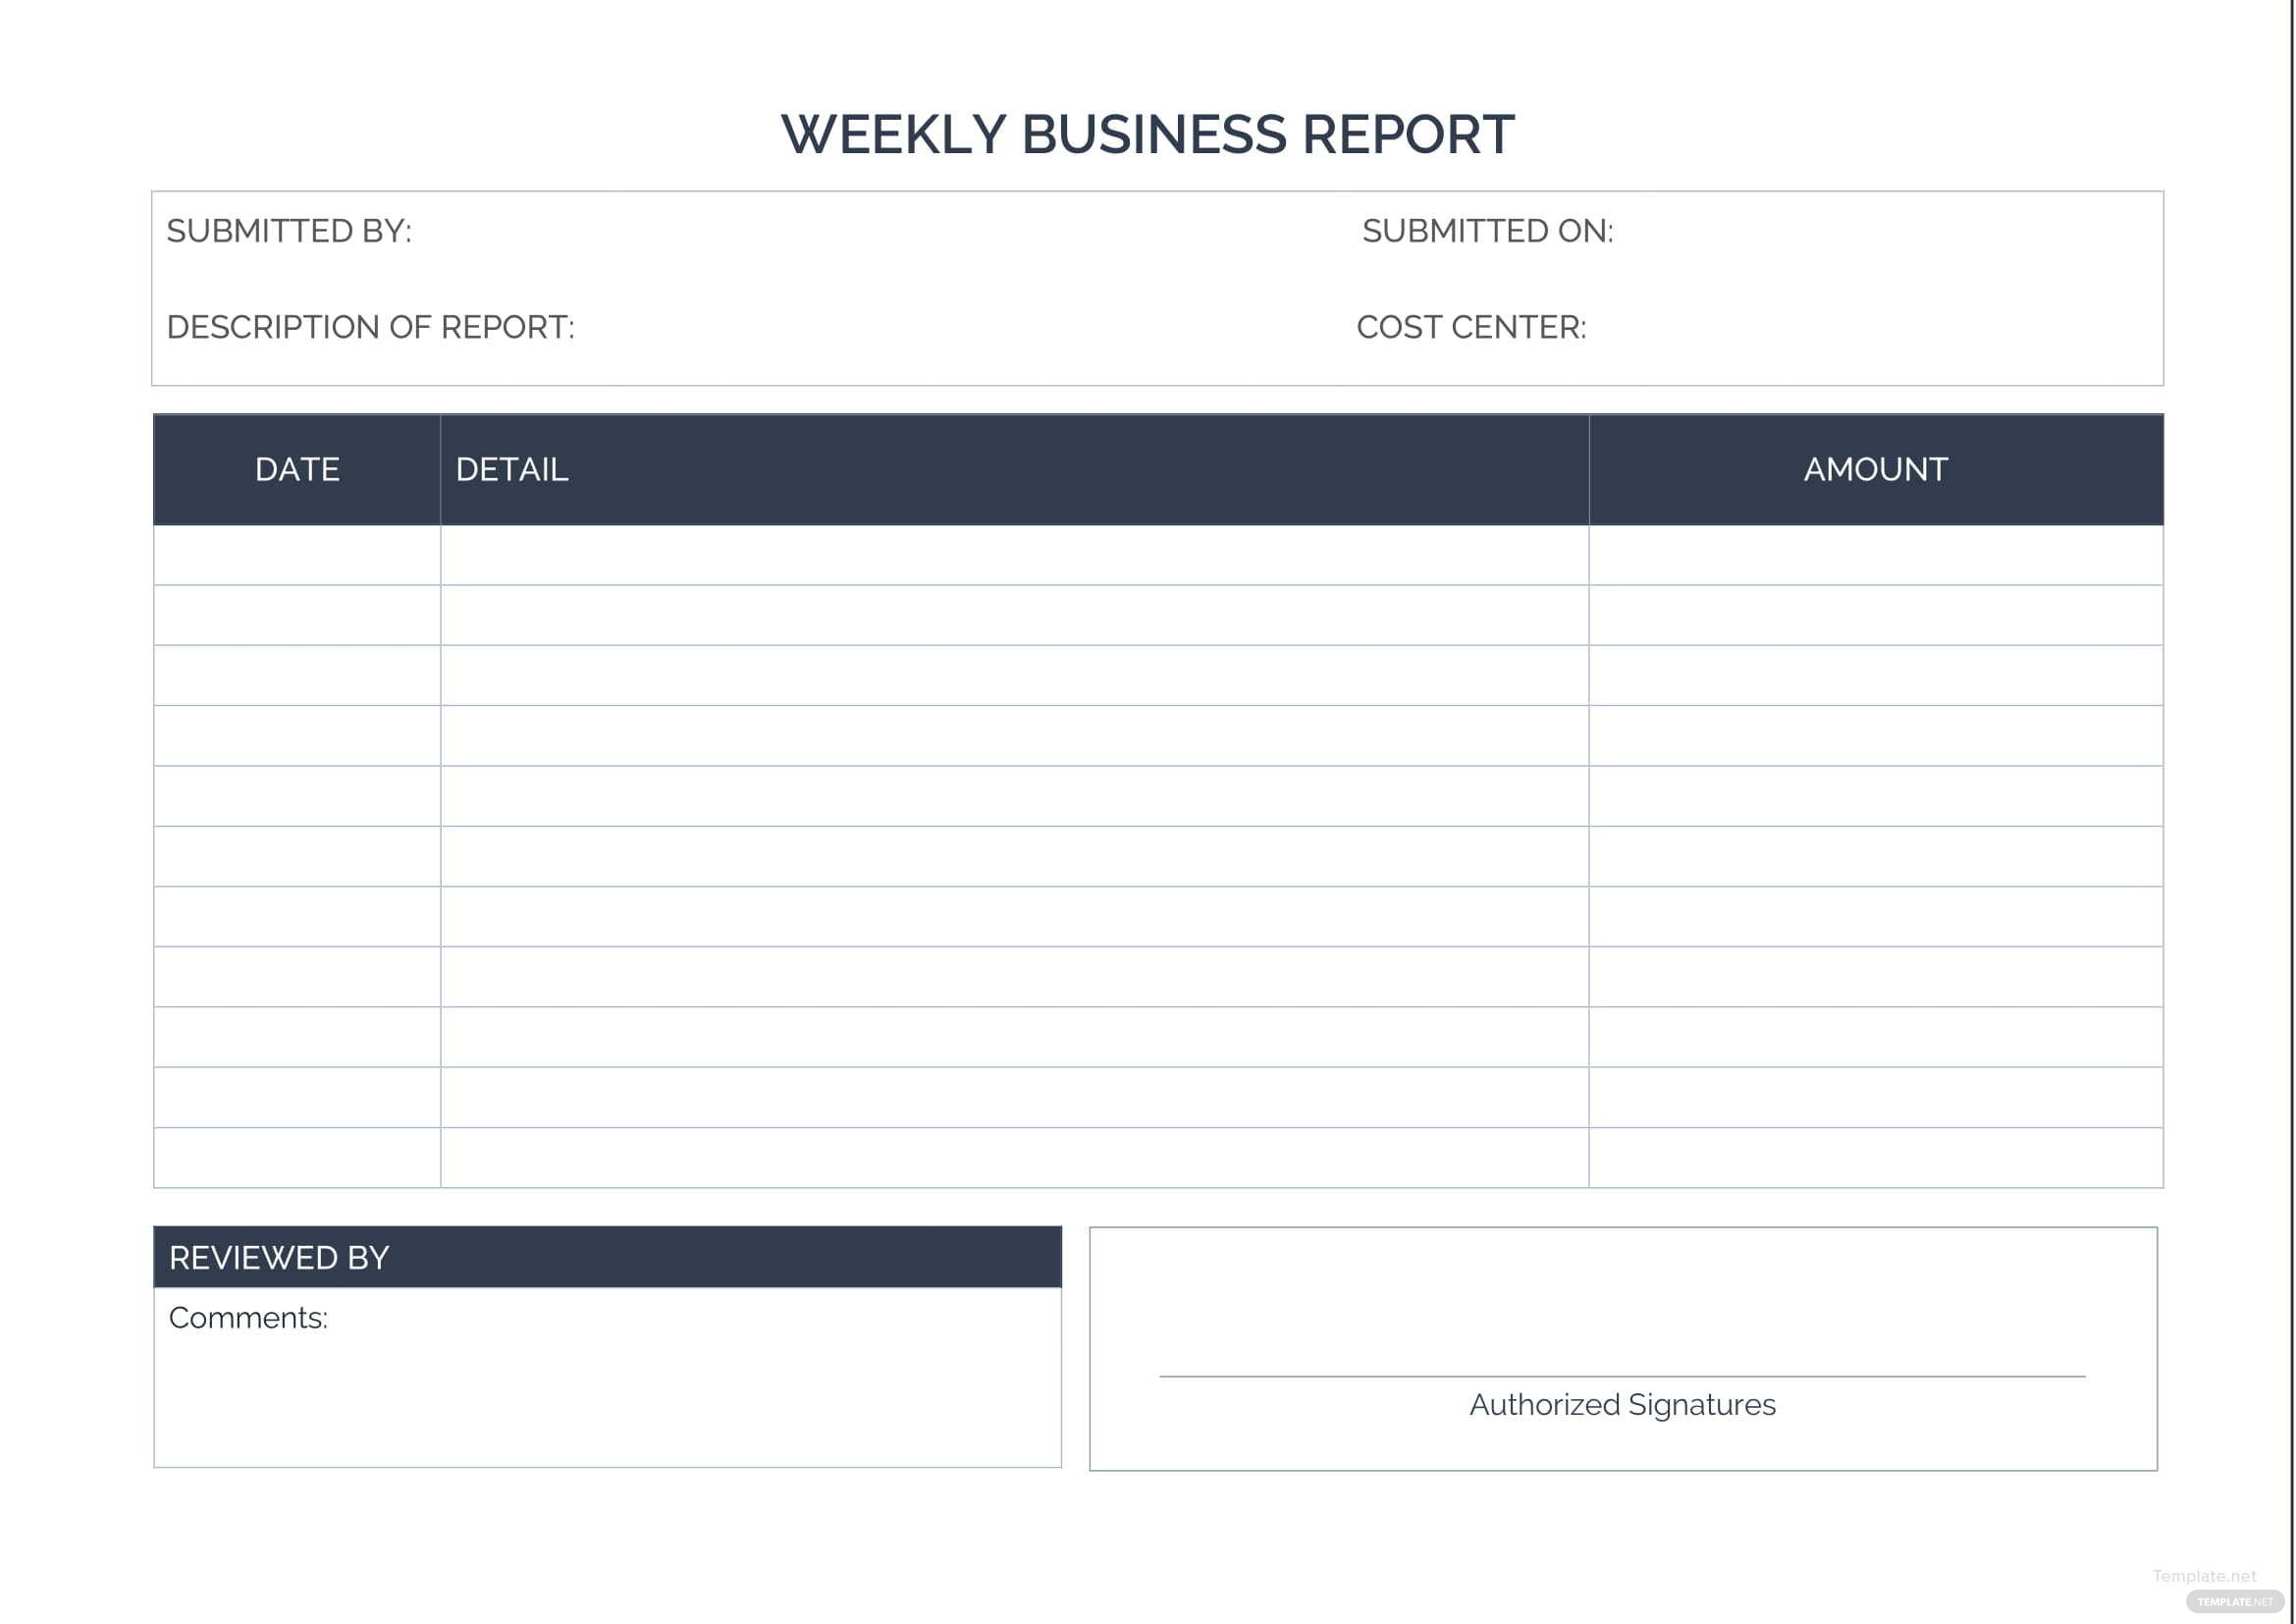 Weekly business report kubreforic weekly business report accmission Image collections